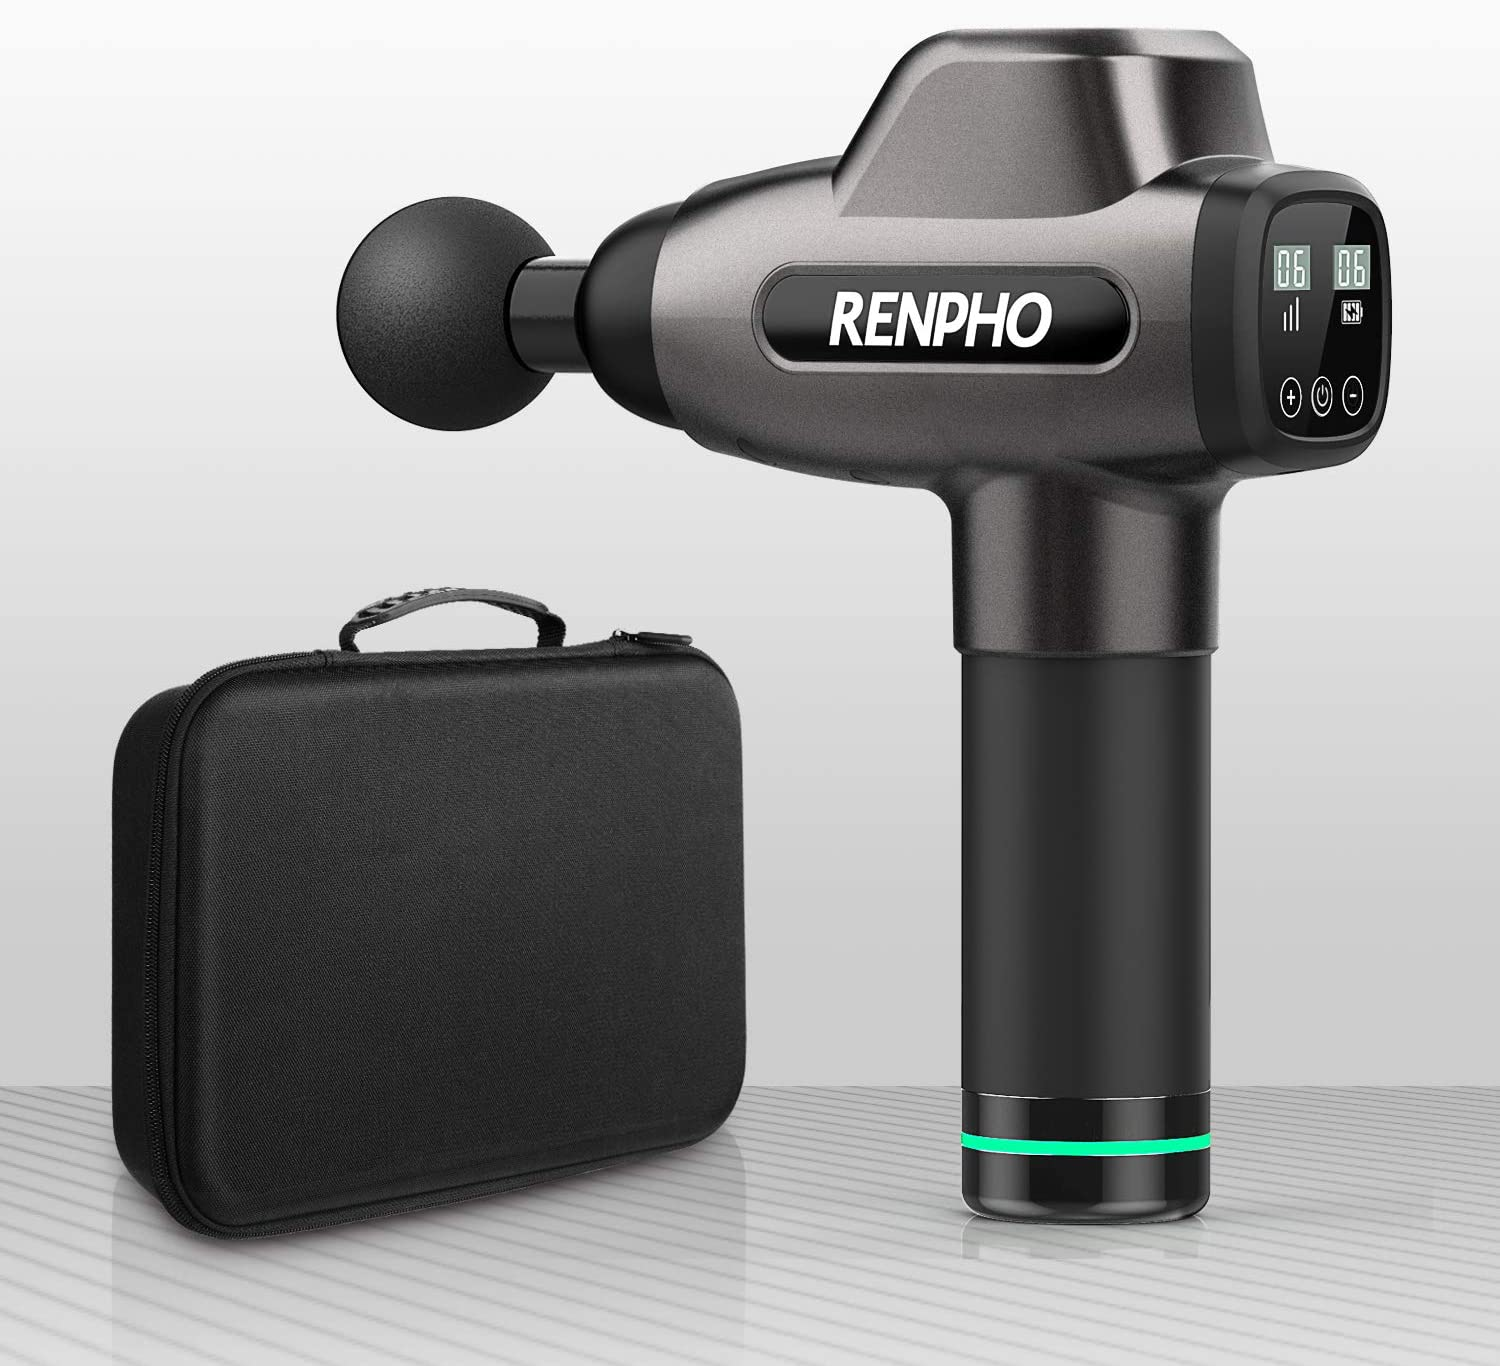 [US Direct] RENPHO Massage Gun, RENPHO C3 Deep Tissue Muscle Massager, Powerful Percussion Massager Handheld with Portable Case for Home Gym Workouts Equipment